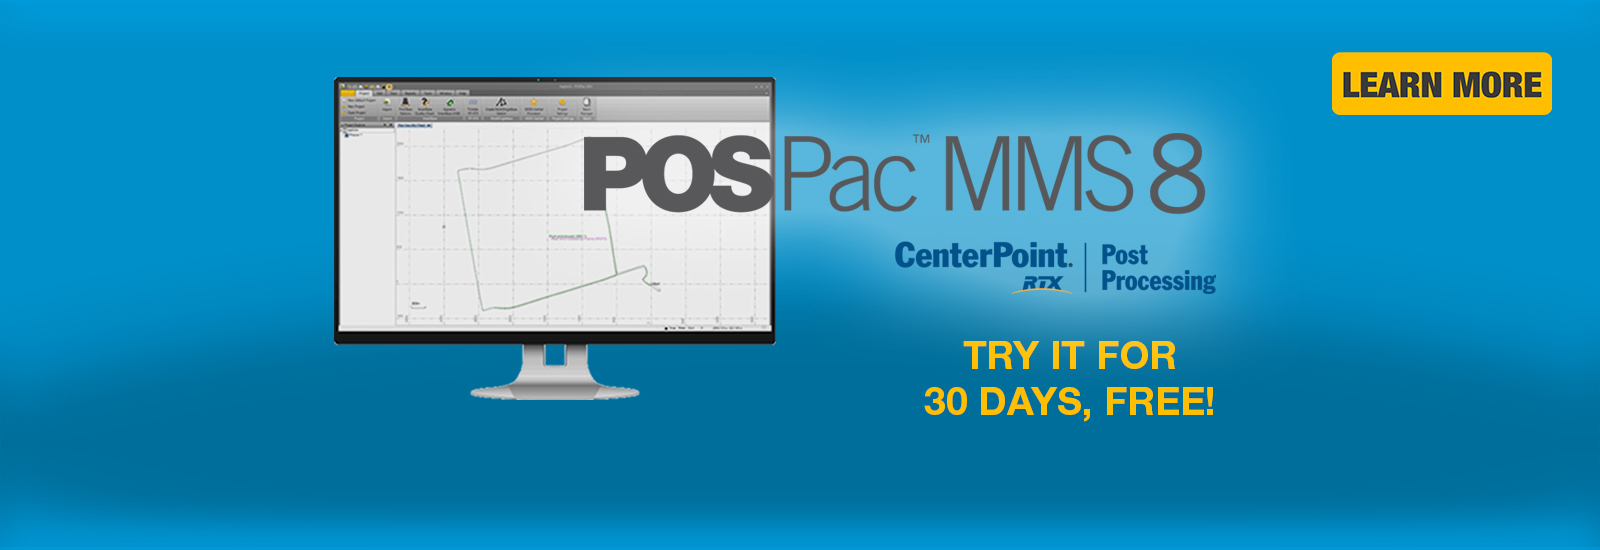 POSPac MMS 8 with CenterPoint RTX